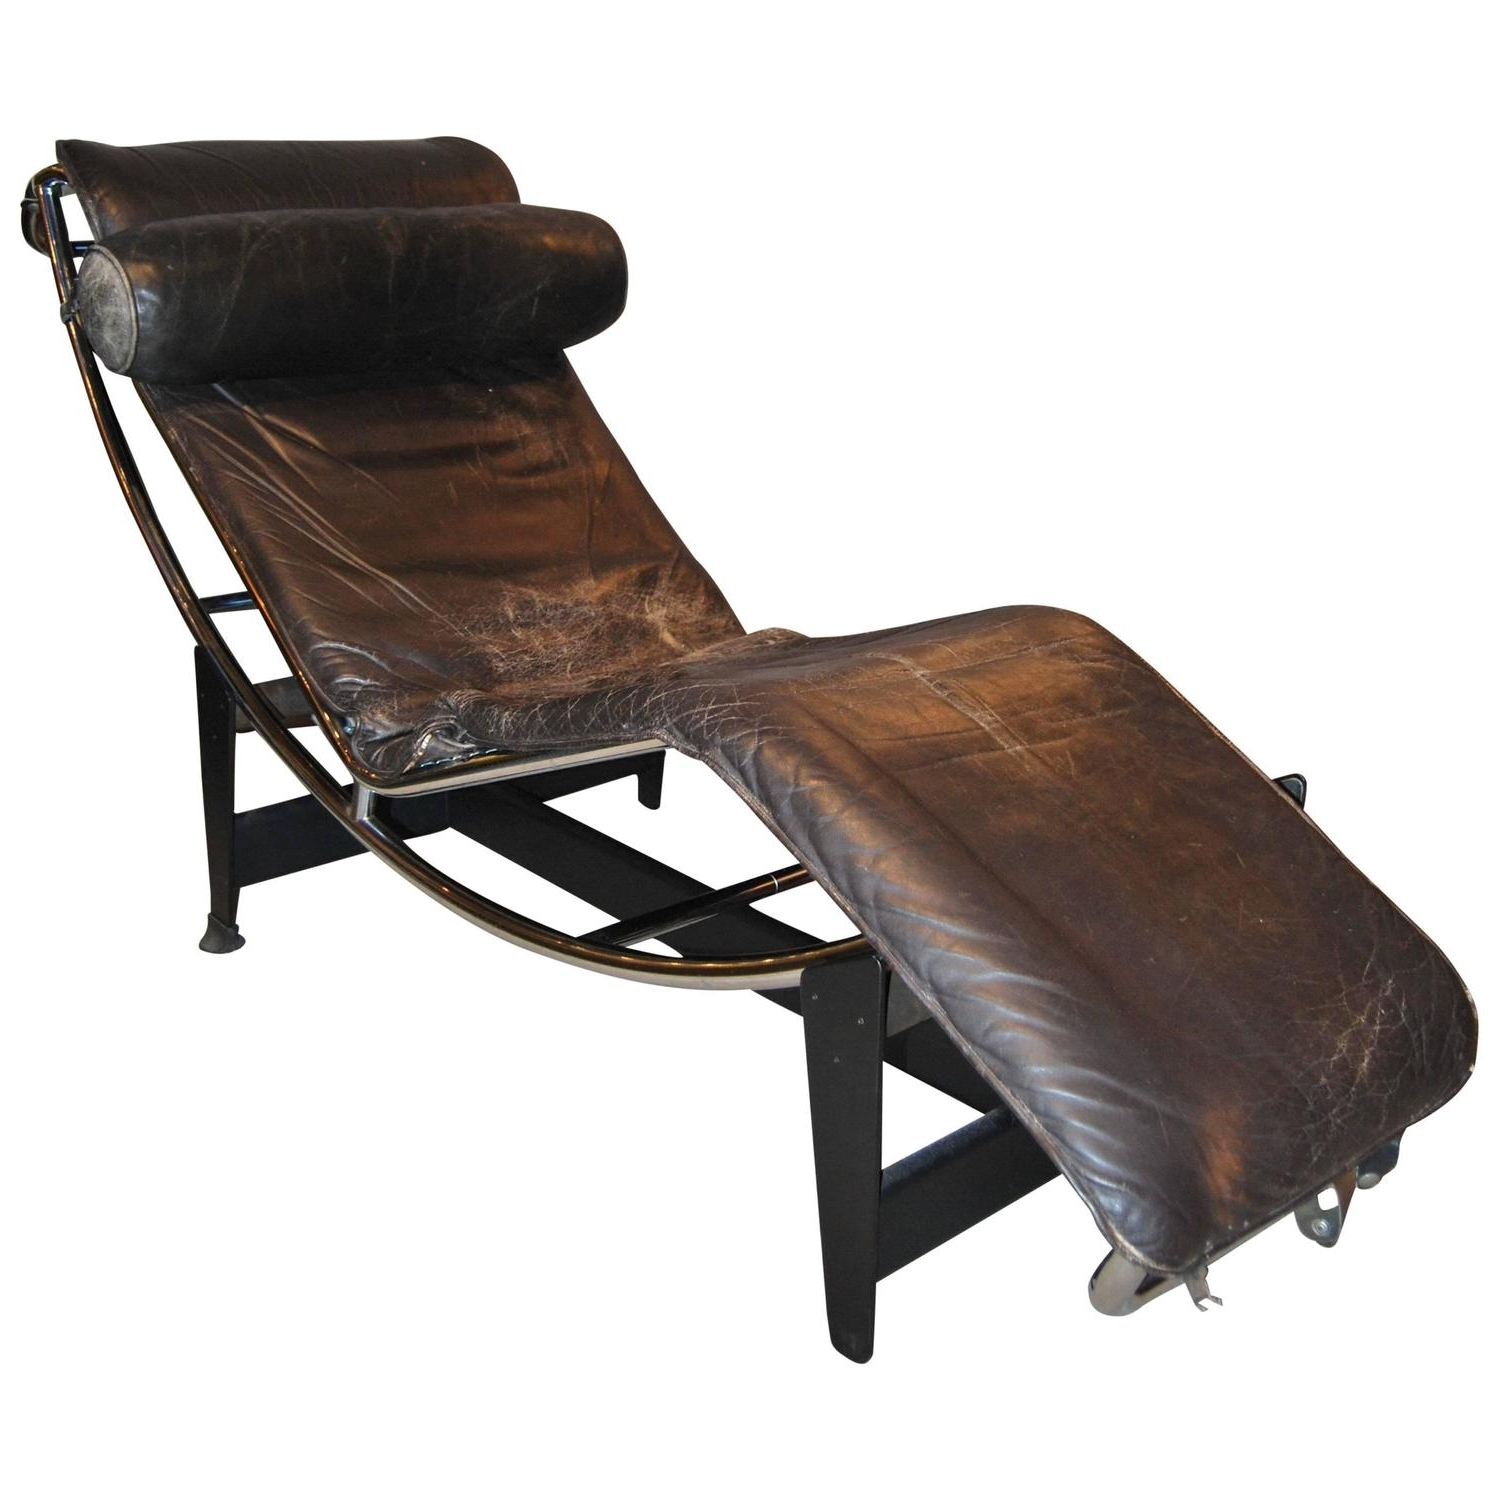 Early Le Corbusier/jeanneret/perriand Lc4 Chaise Lounge For Sale Regarding Fashionable Le Corbusier Chaises (View 9 of 15)